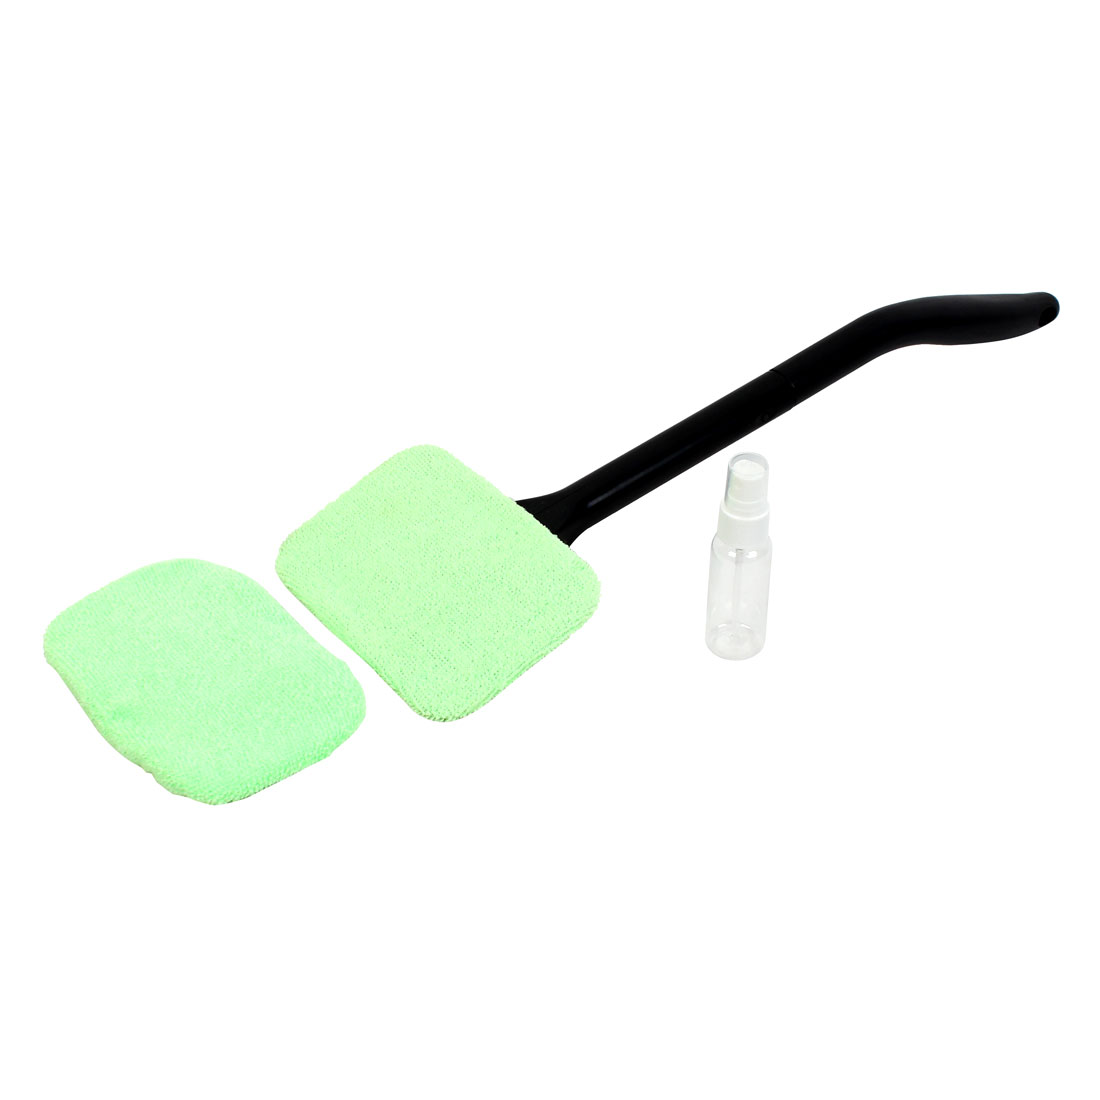 Car Auto Plastic Nonslip Grip Fast Easy Window Glass Windshield Cleaning Tool